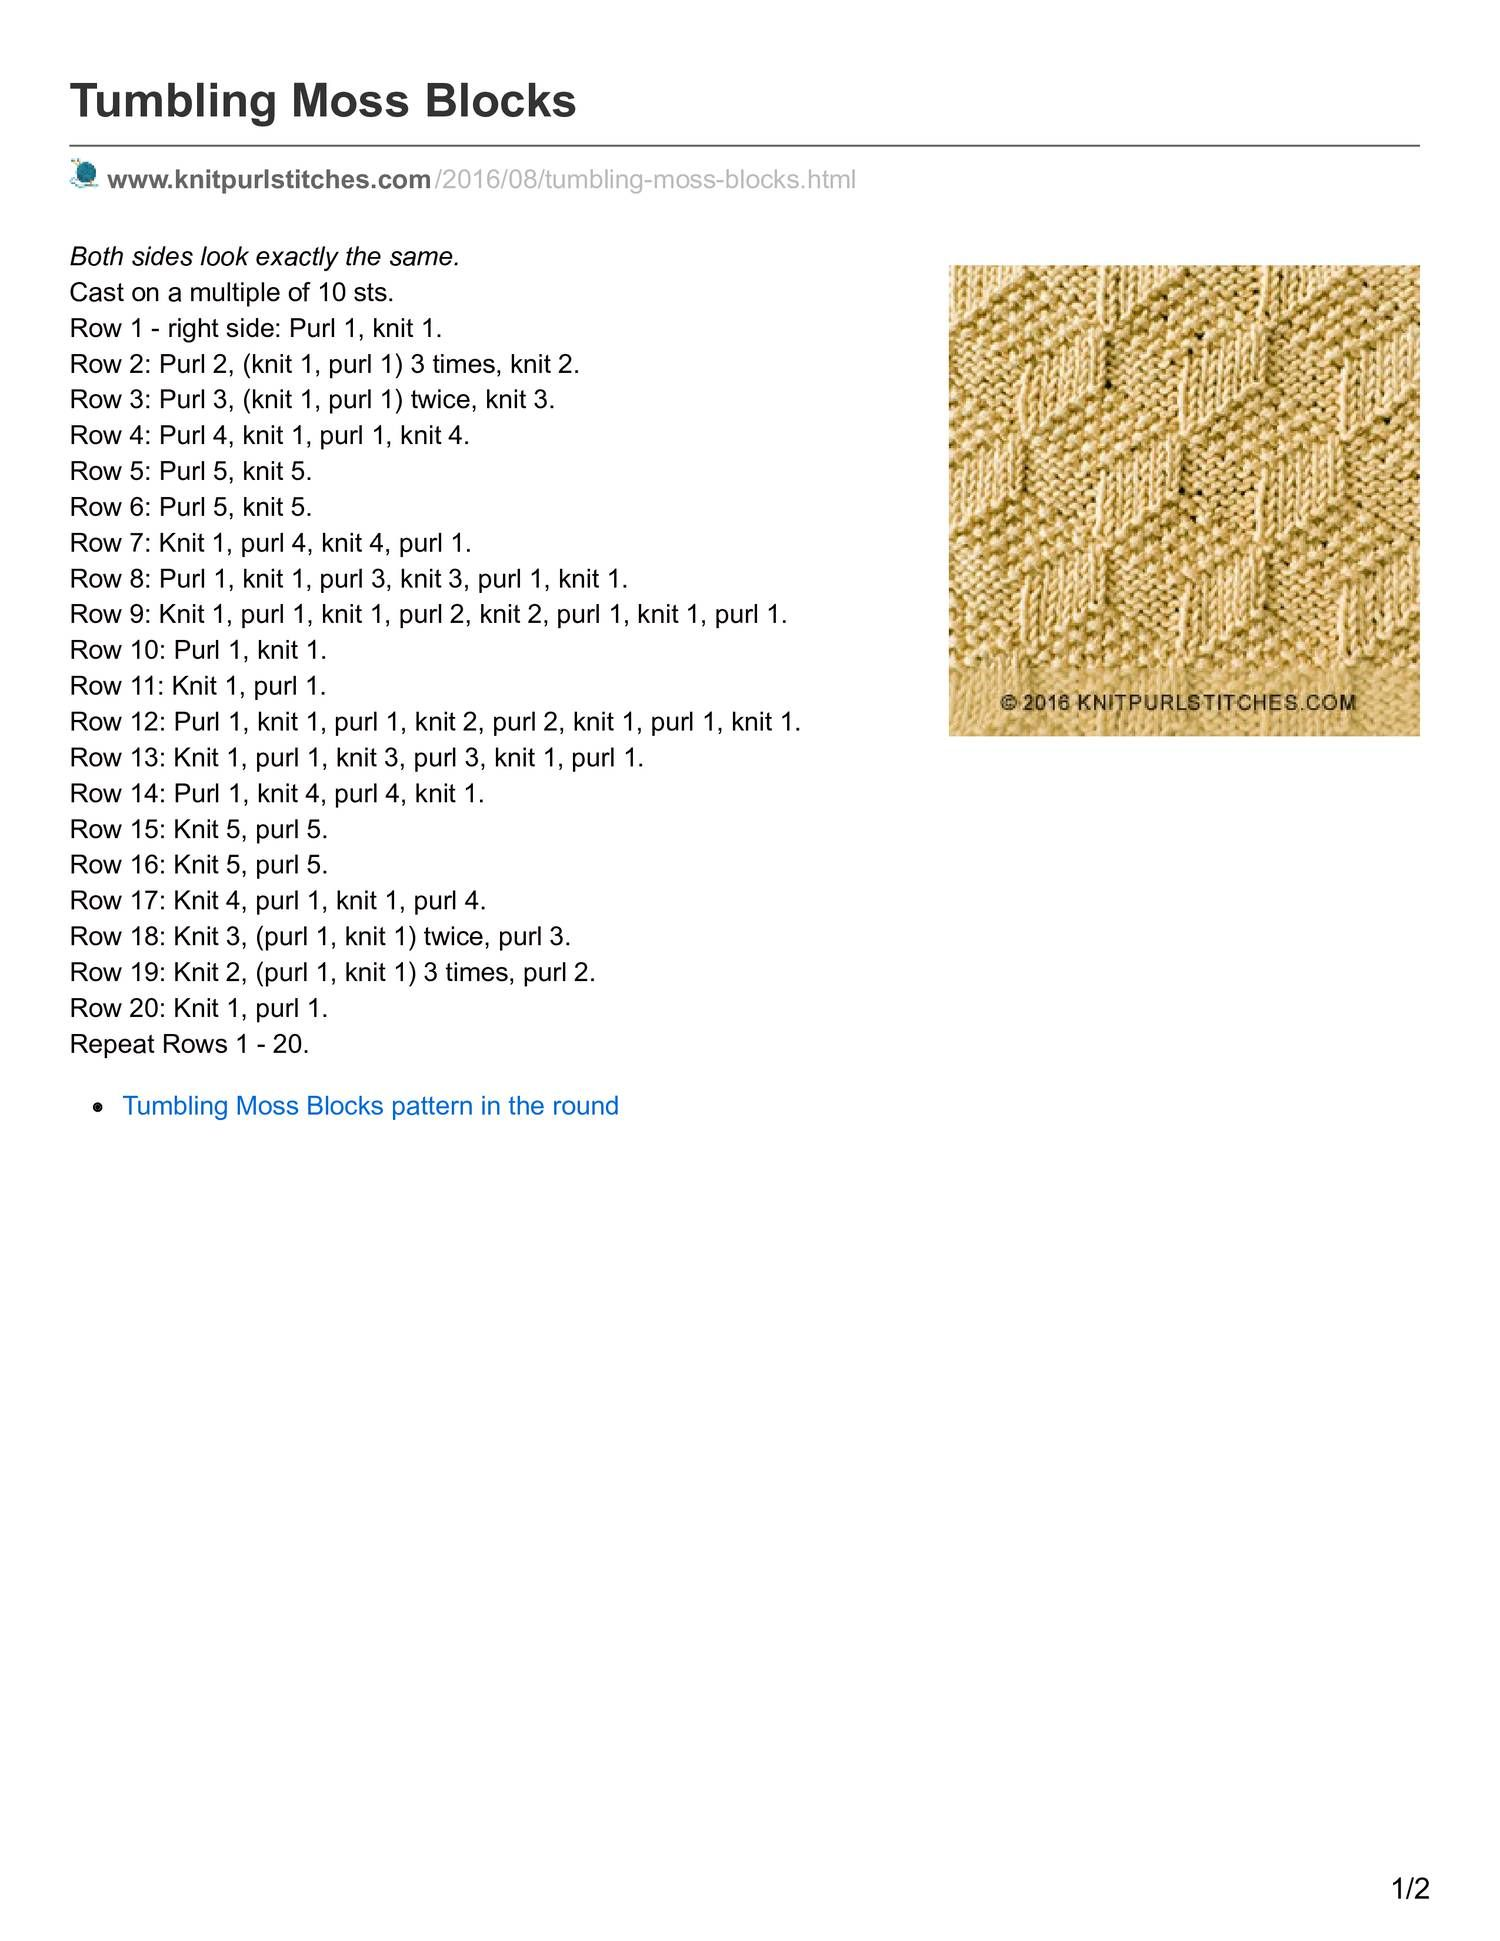 View and download knitpurlstitches.com-Tumbling Moss Blocks.pdf on ...